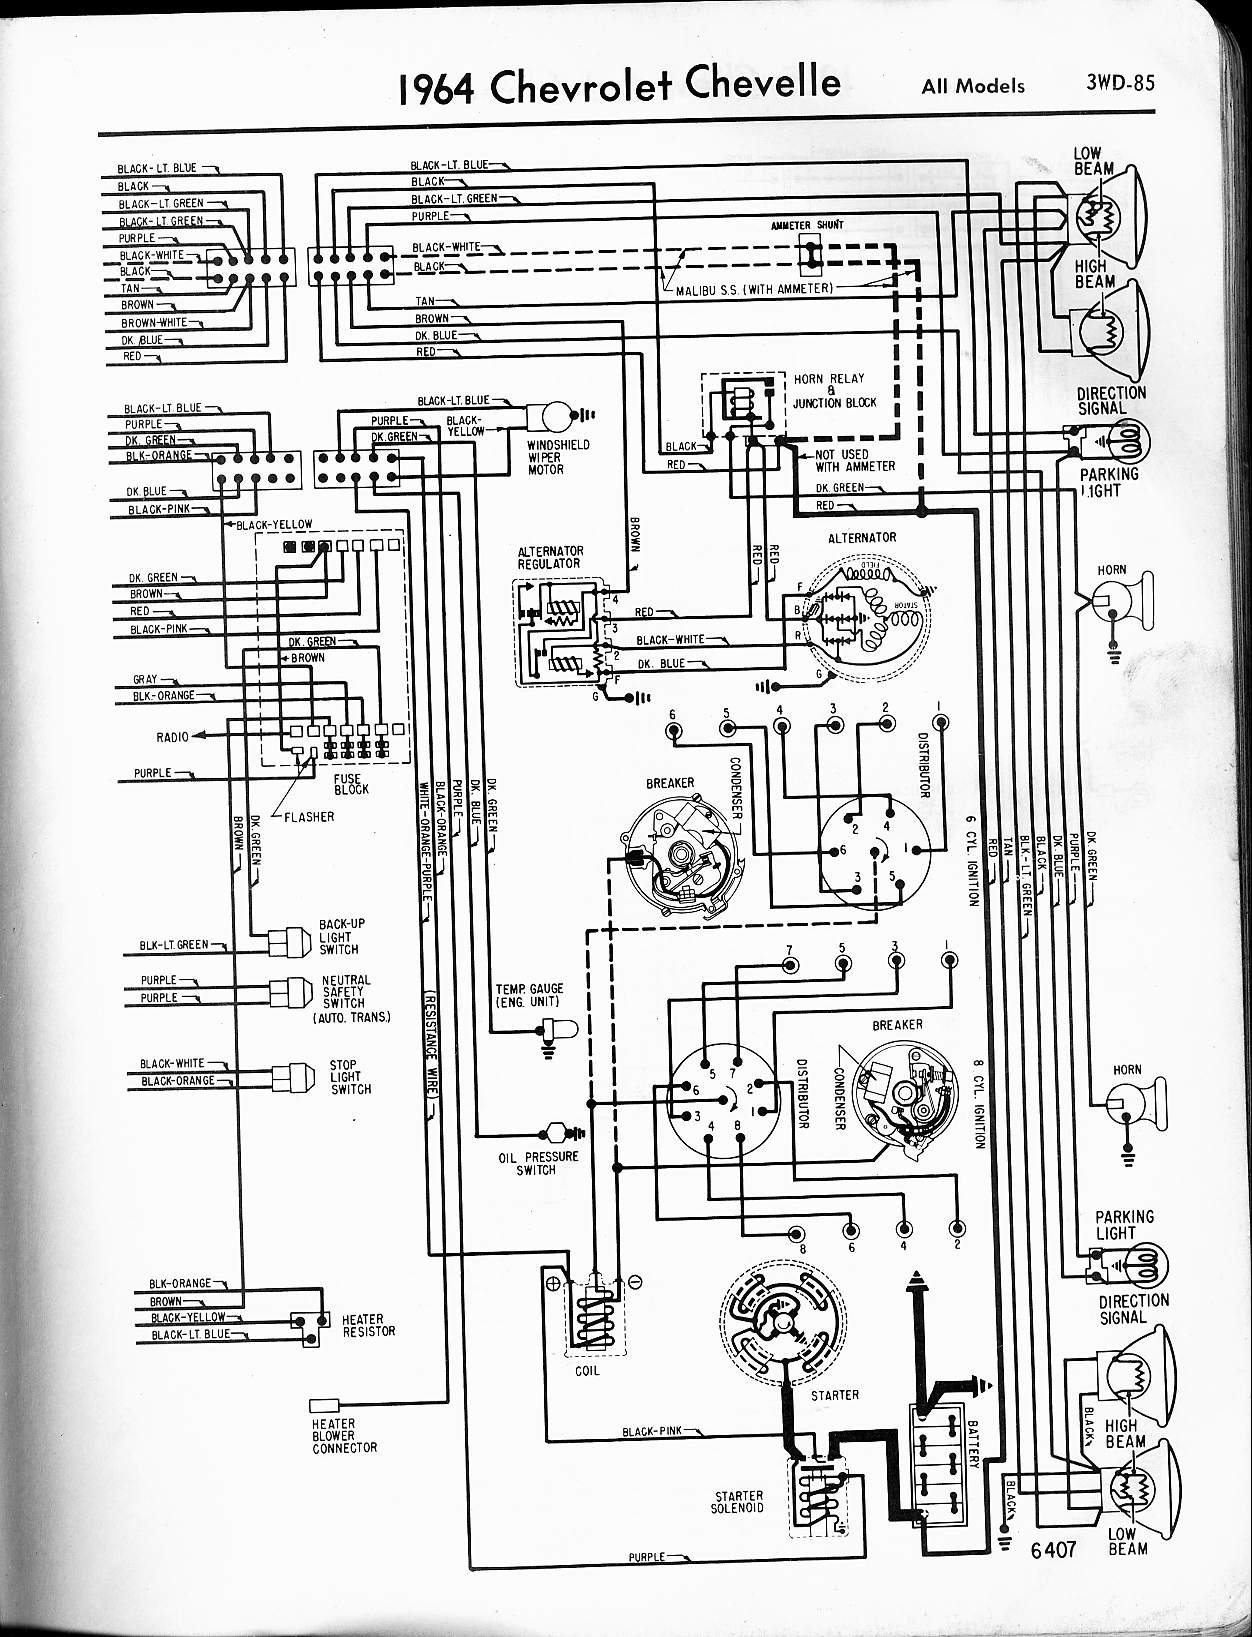 1965 Chevy Fuse Box Diagram Archive Of Automotive Wiring Lincoln Continental 1964 Corvette Pictures Rh Smdeeming Co Uk Impala